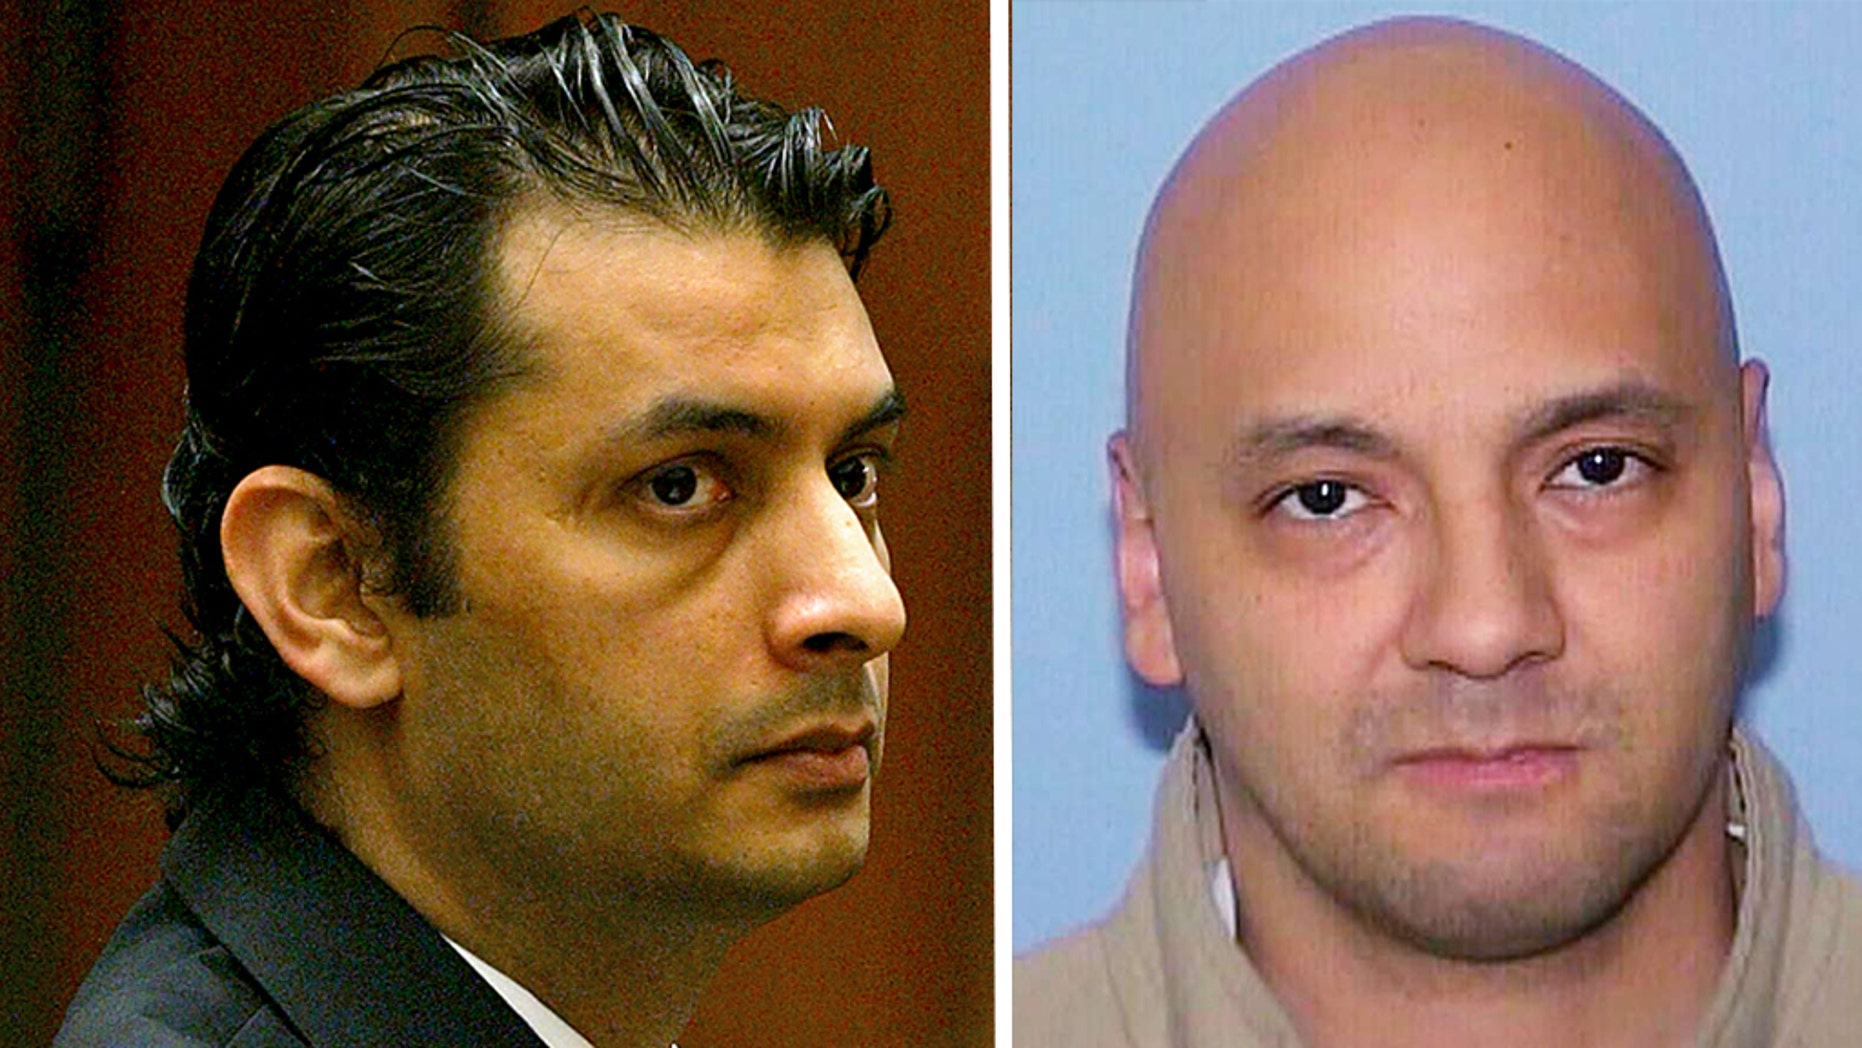 Virendra Govin, left, and Andrew Urdiales, right, were both found unresponsive at the San Quentin State Prison in California over the weekend.